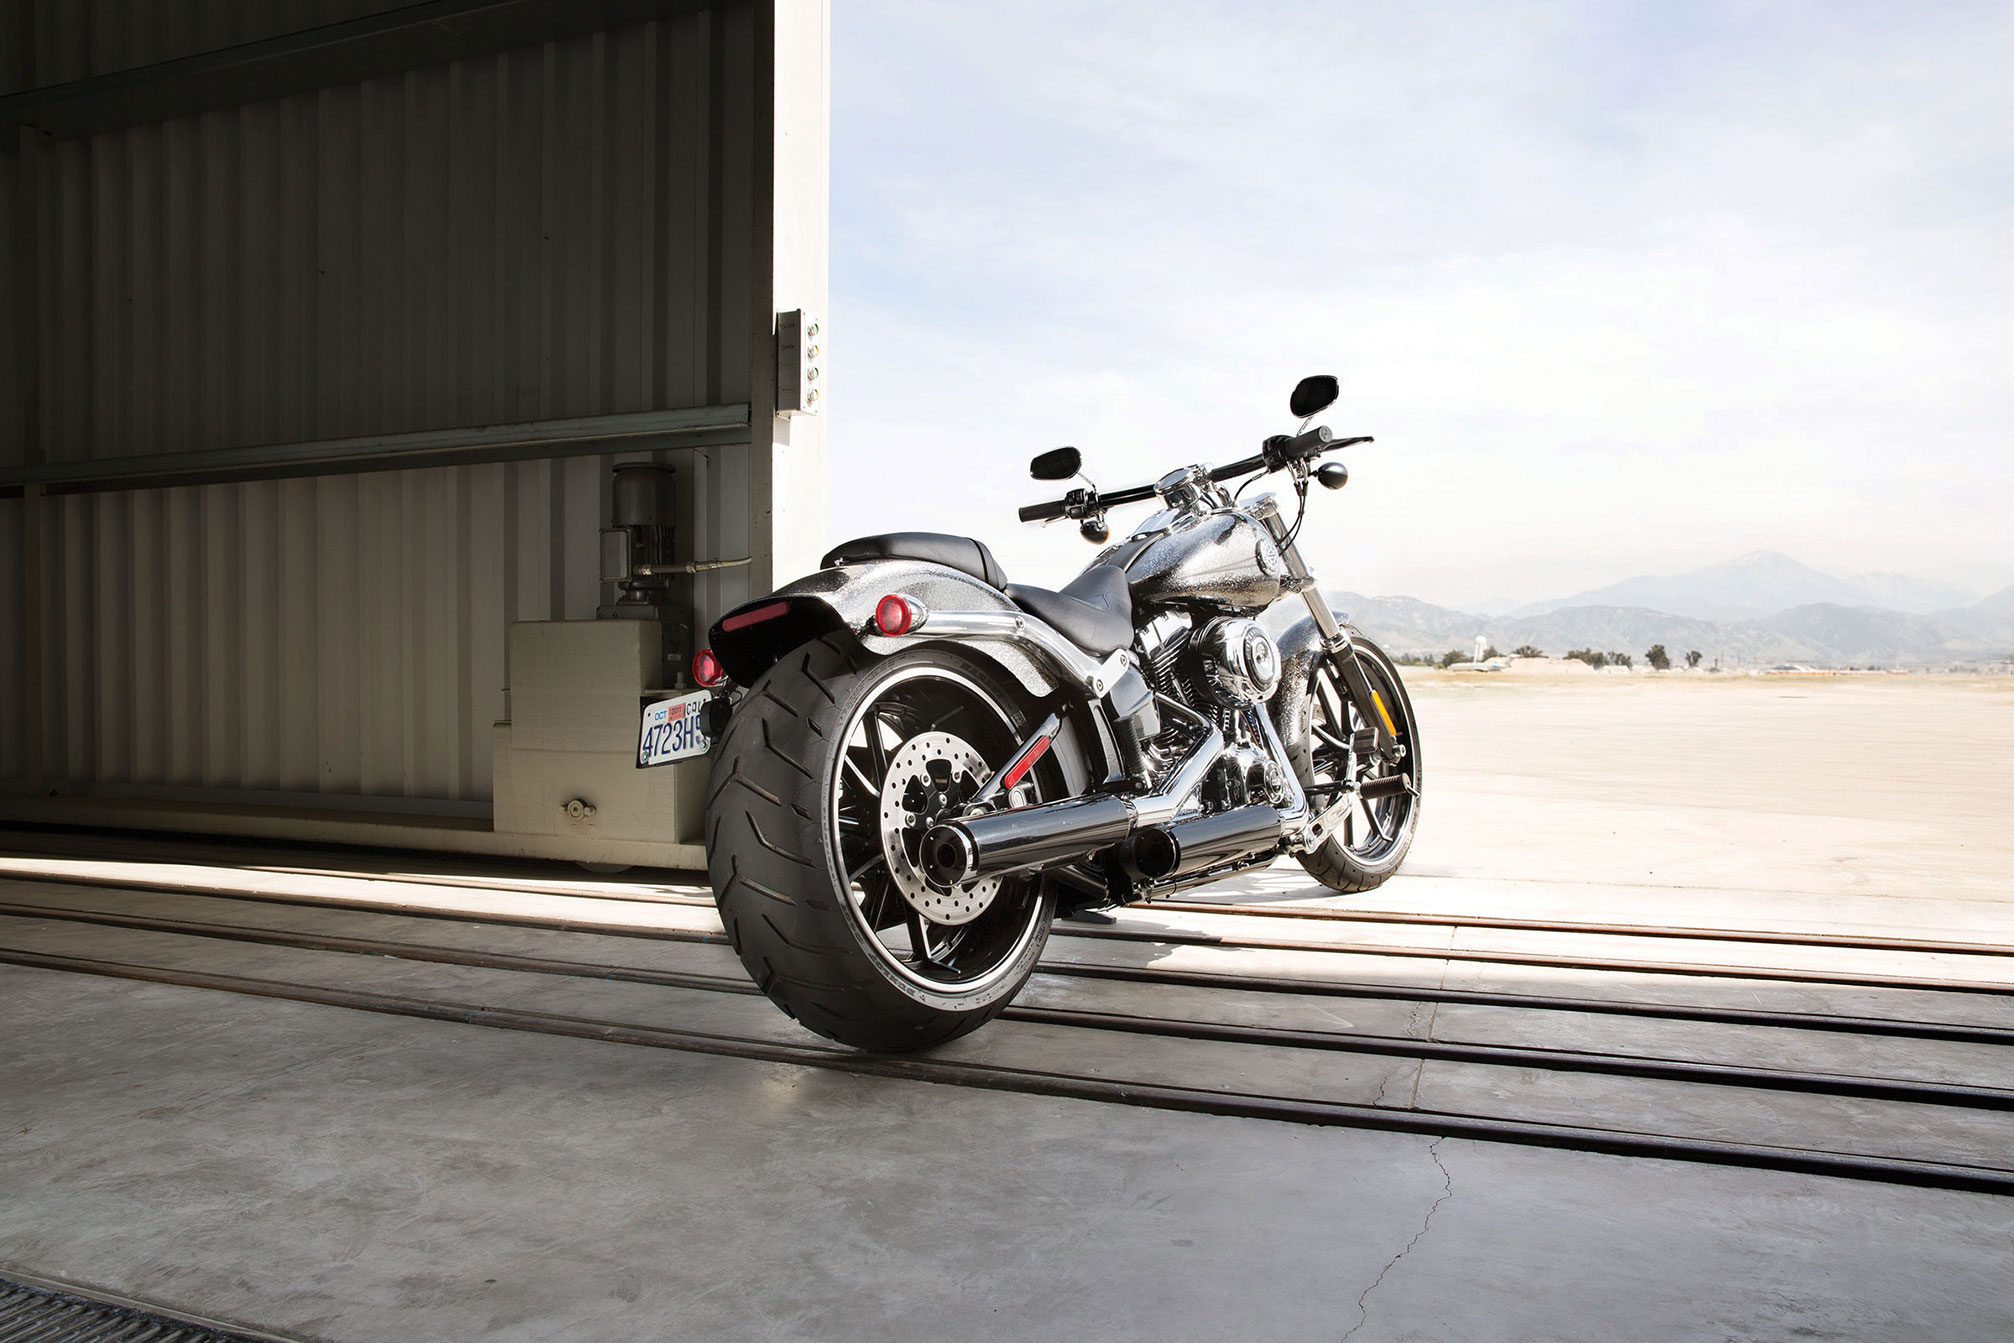 2014 harley davidson fxsb breakout review back to 2014 harley davidson motorcycle model review page nvjuhfo Images